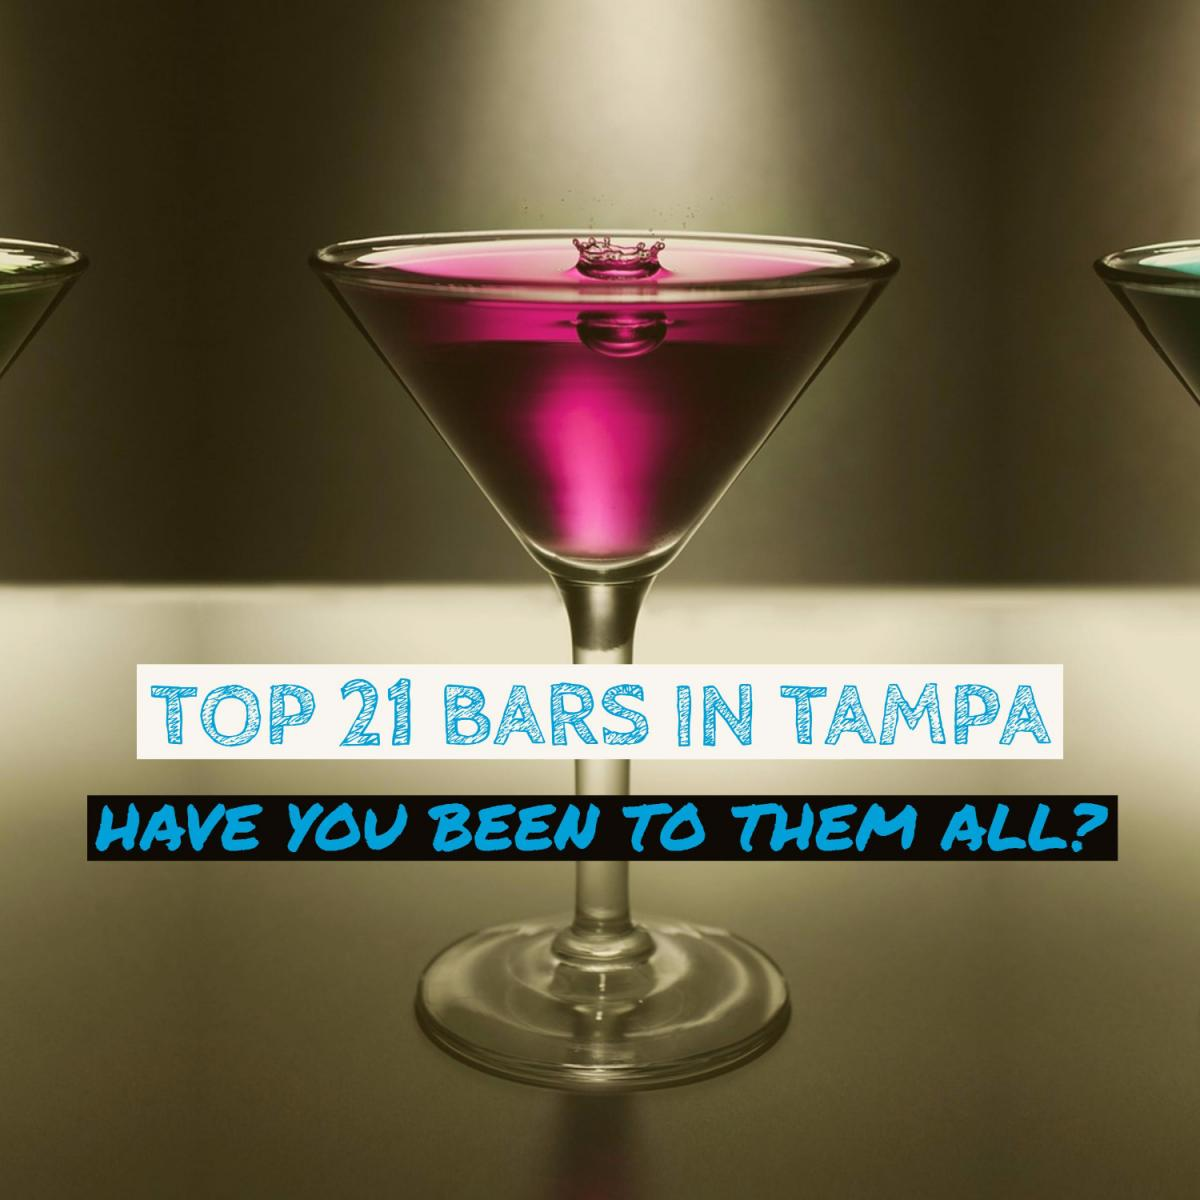 Top 21 Bars in Tampa | Have You Been To All of Them?